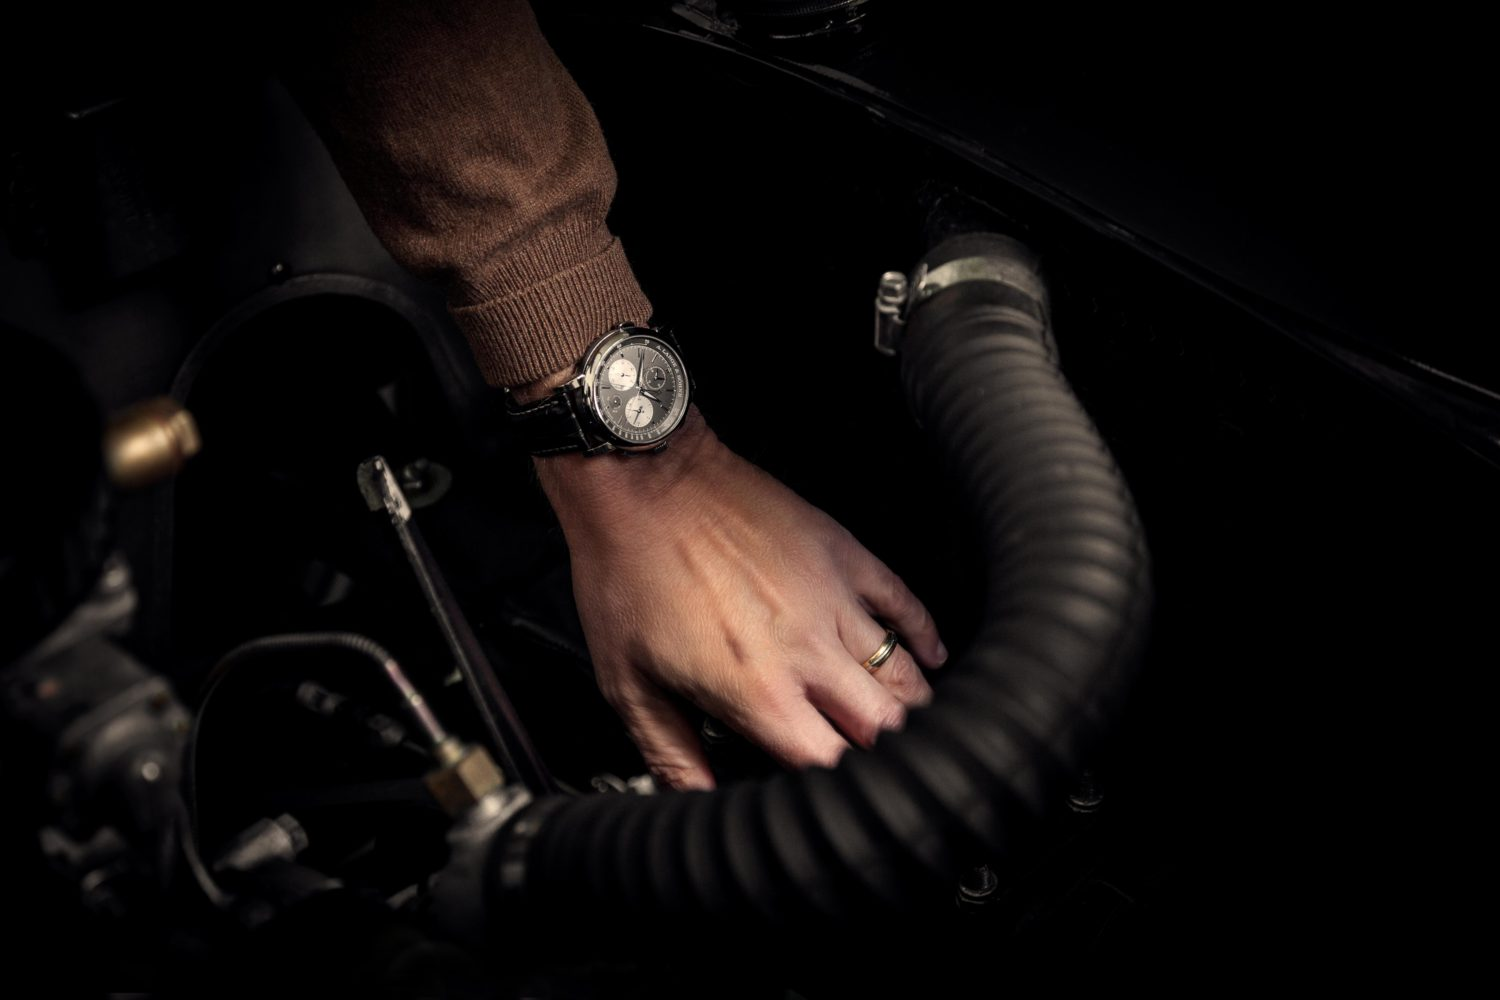 Concours of Elegance Partners with A. Lange & Söhne